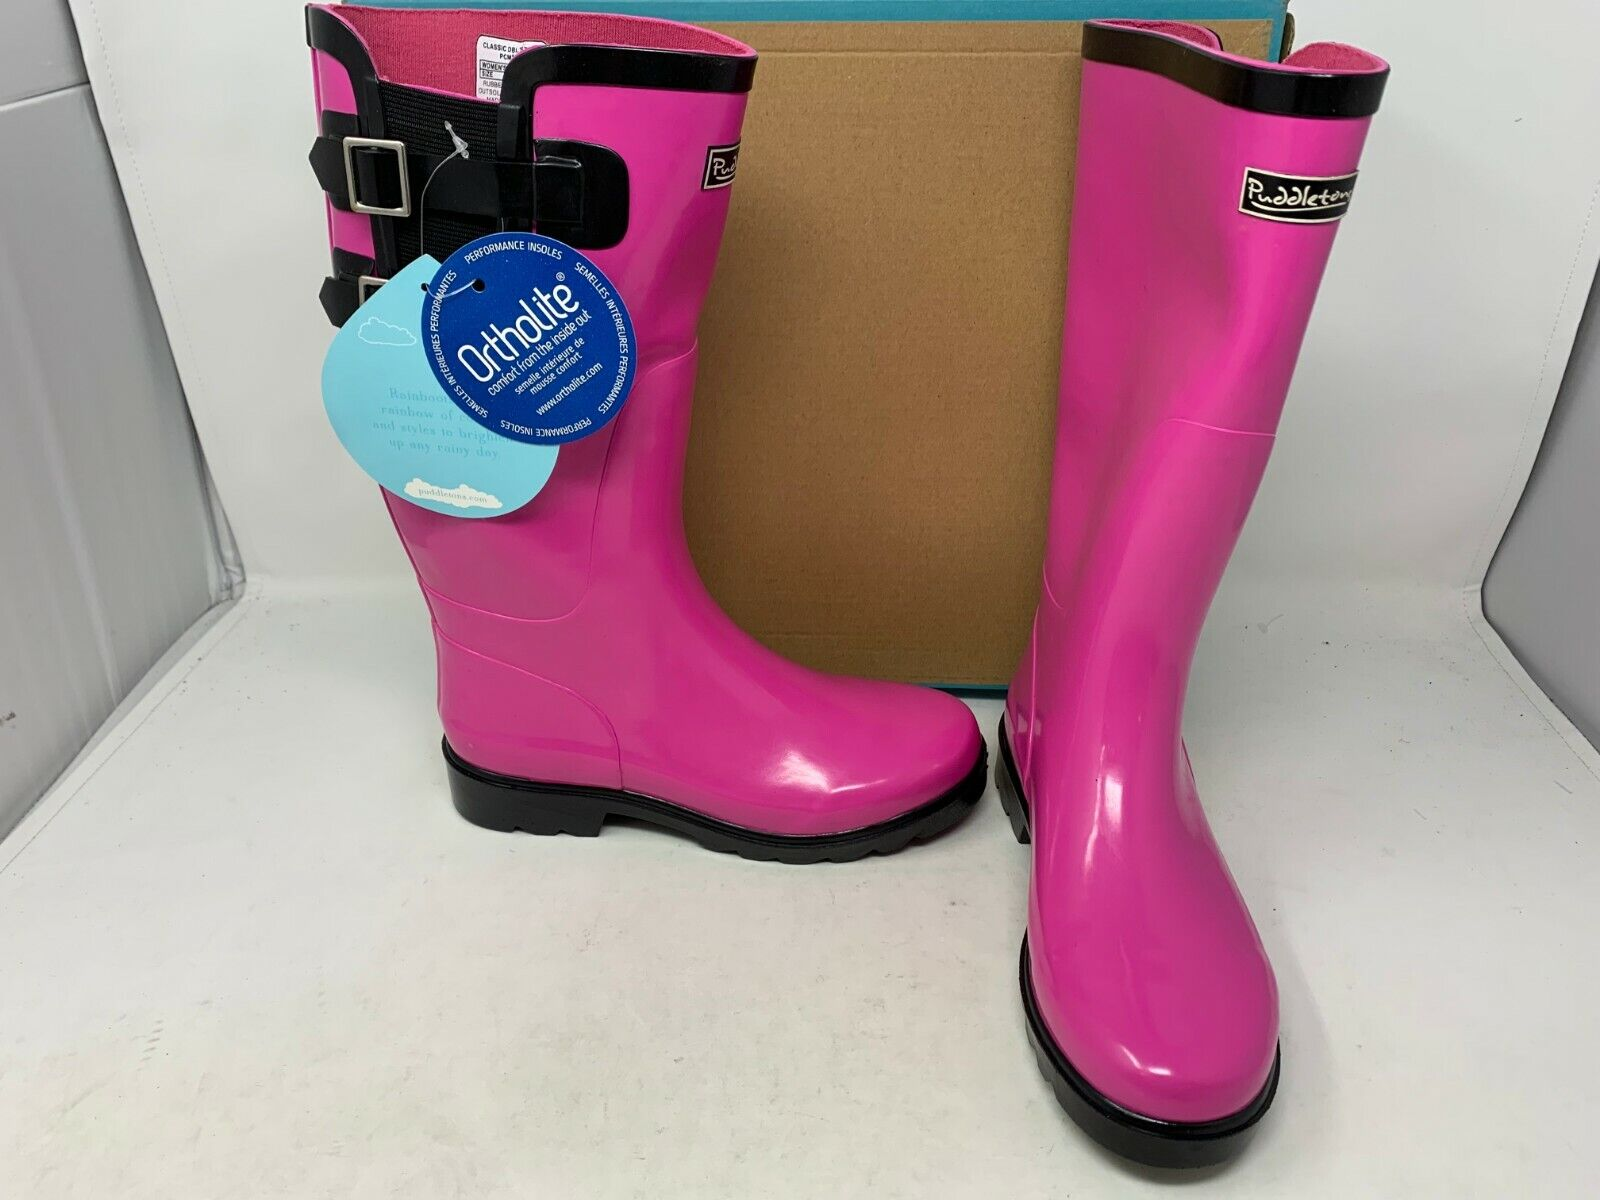 NEW! Puddletons Women's Classic Double Strap Rubber Boots Pn